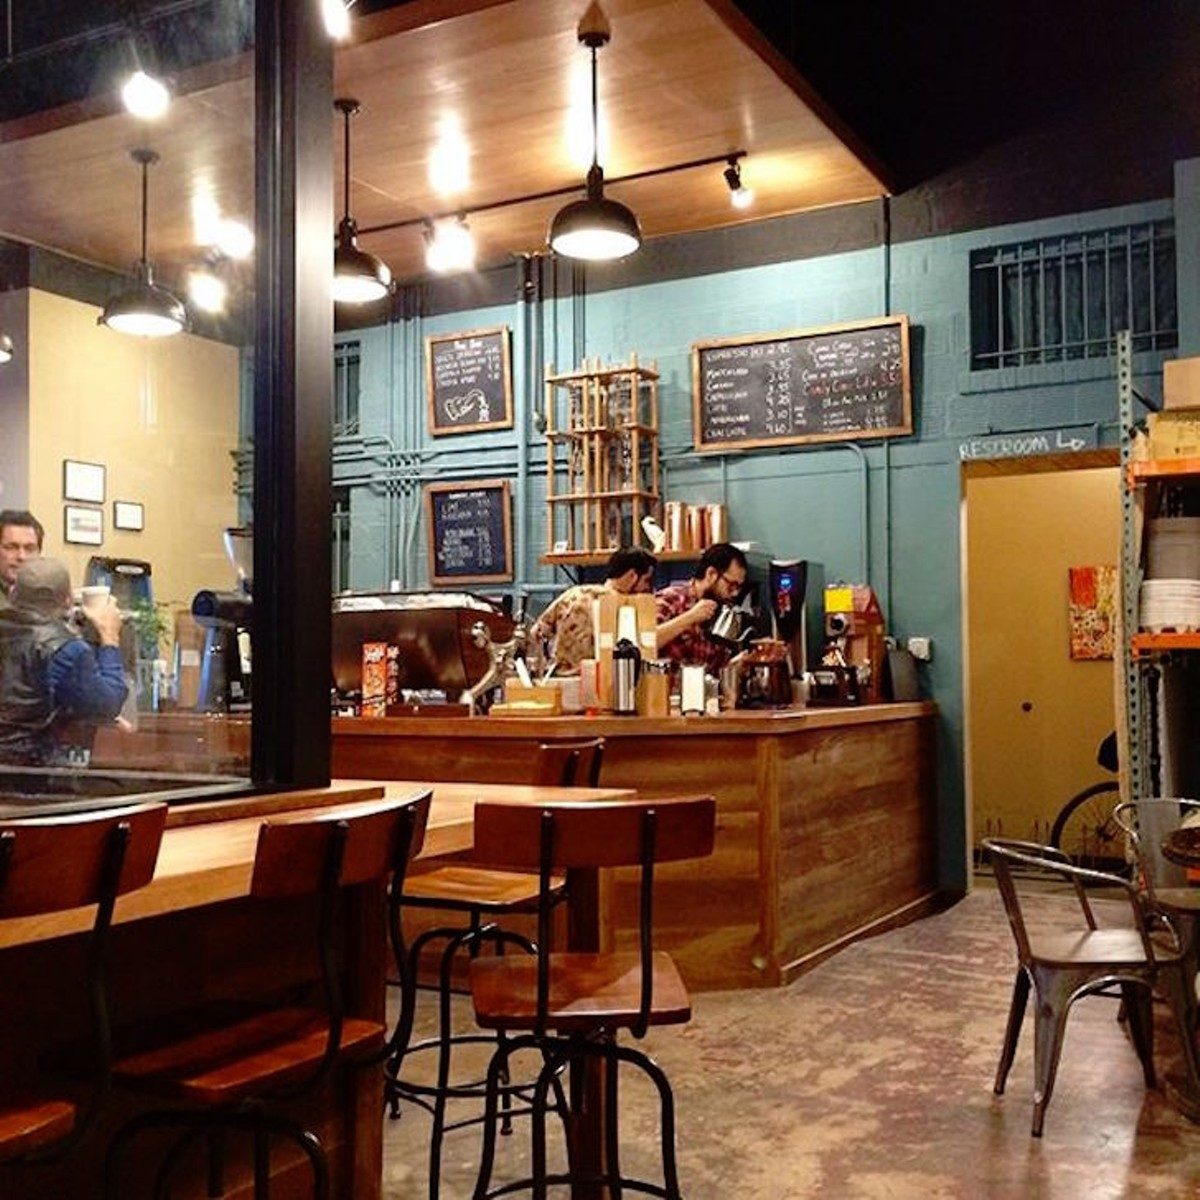 25 coffee shops you should visit in san antonio that aren for Asia kitchen san antonio tx